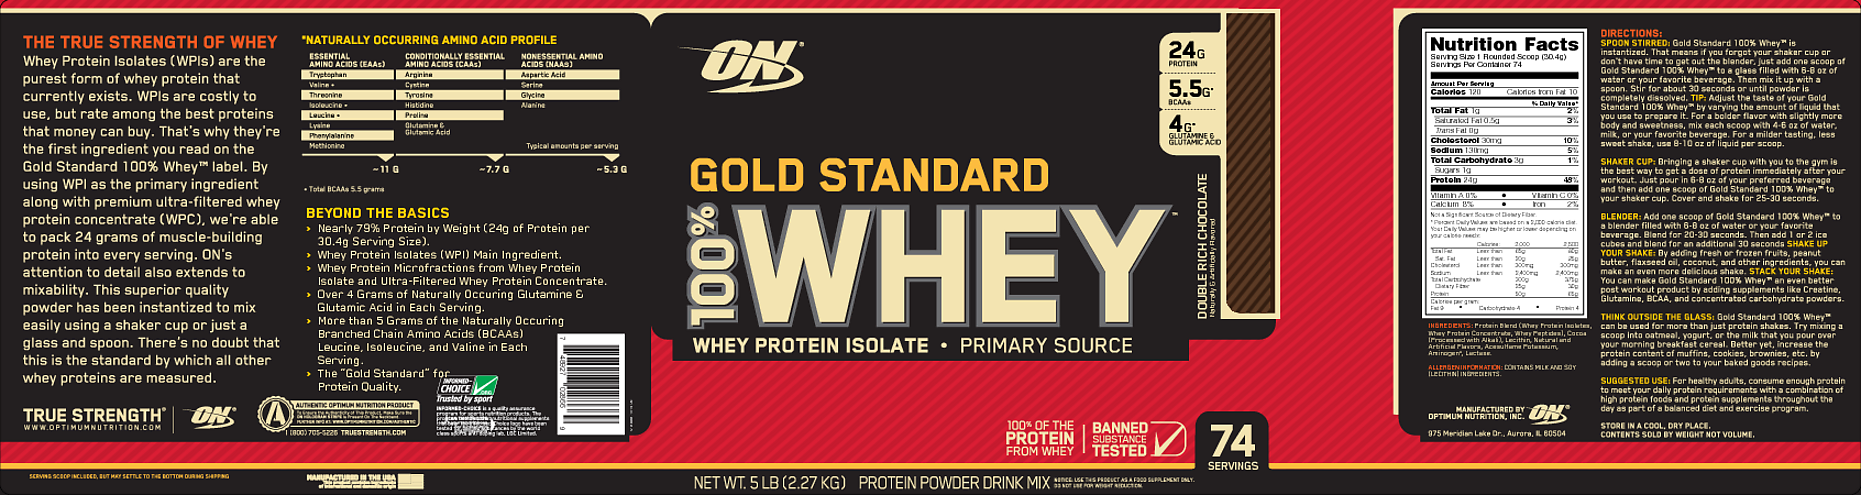 Optimum Nutrition Gold Standard 100% Whey Protein Powder, Double Rich Chocolate, 24g Protein, 5 Lb - Walmart.com